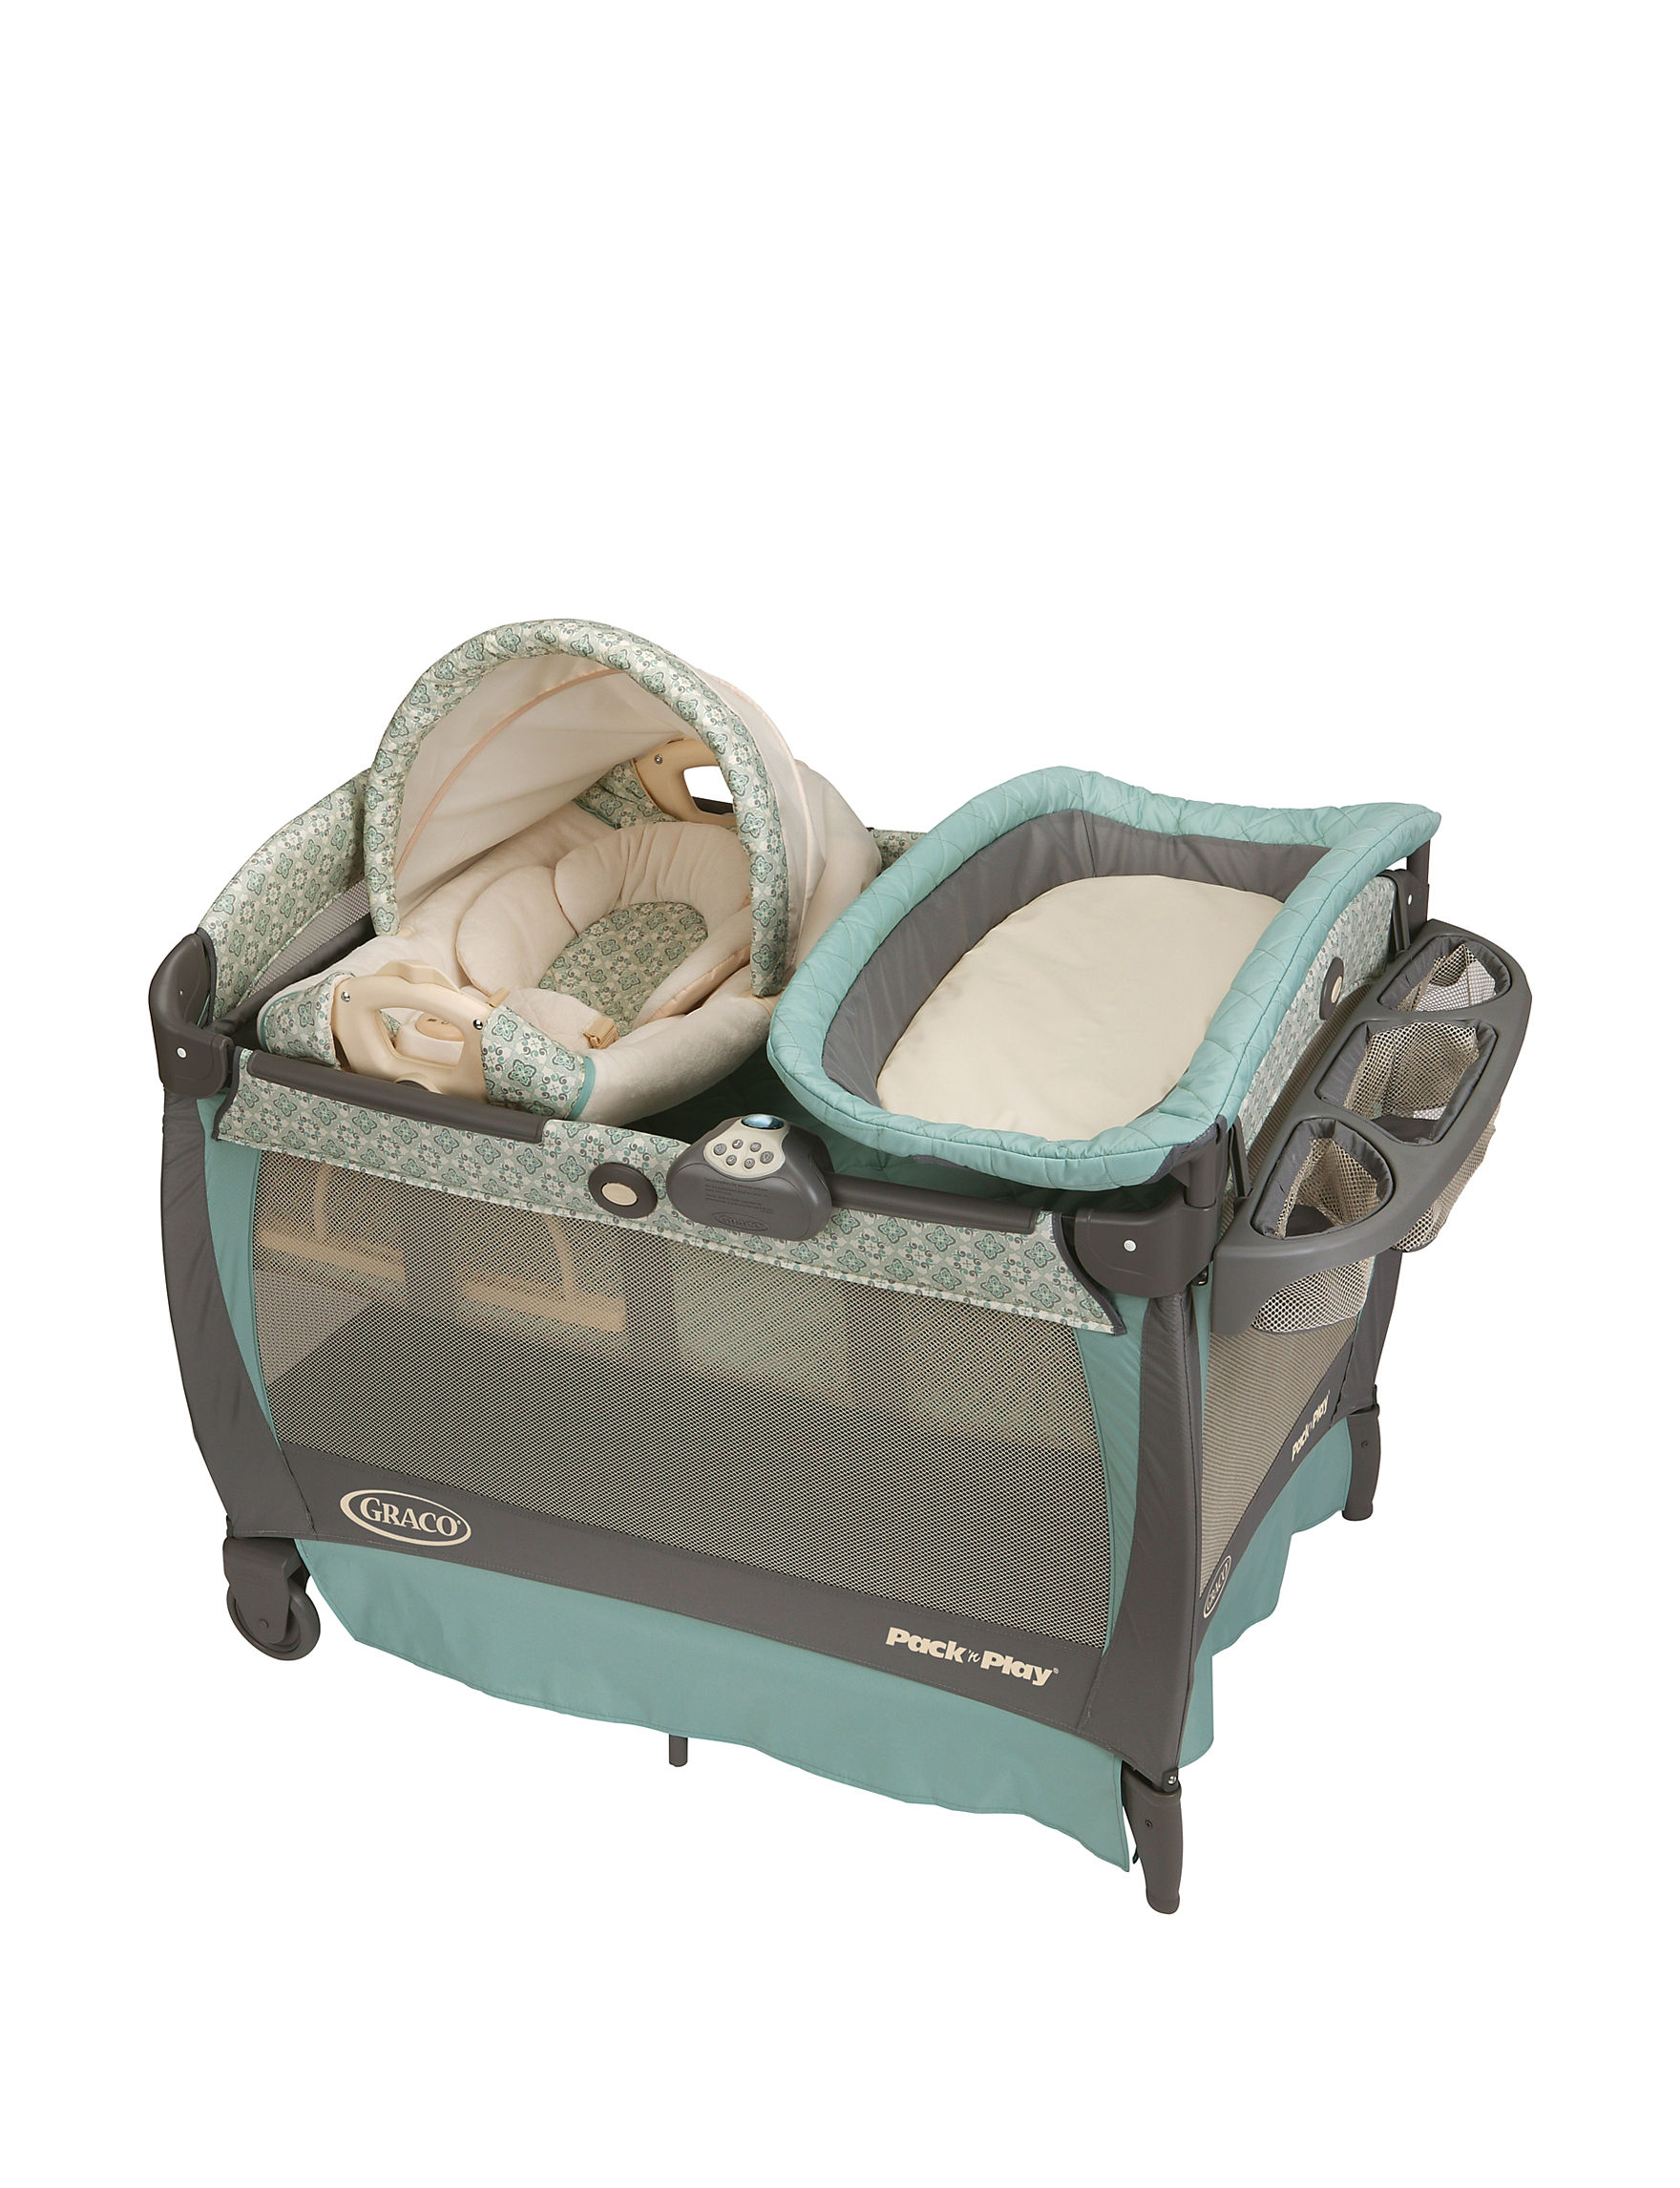 Graco Blue Play Yards